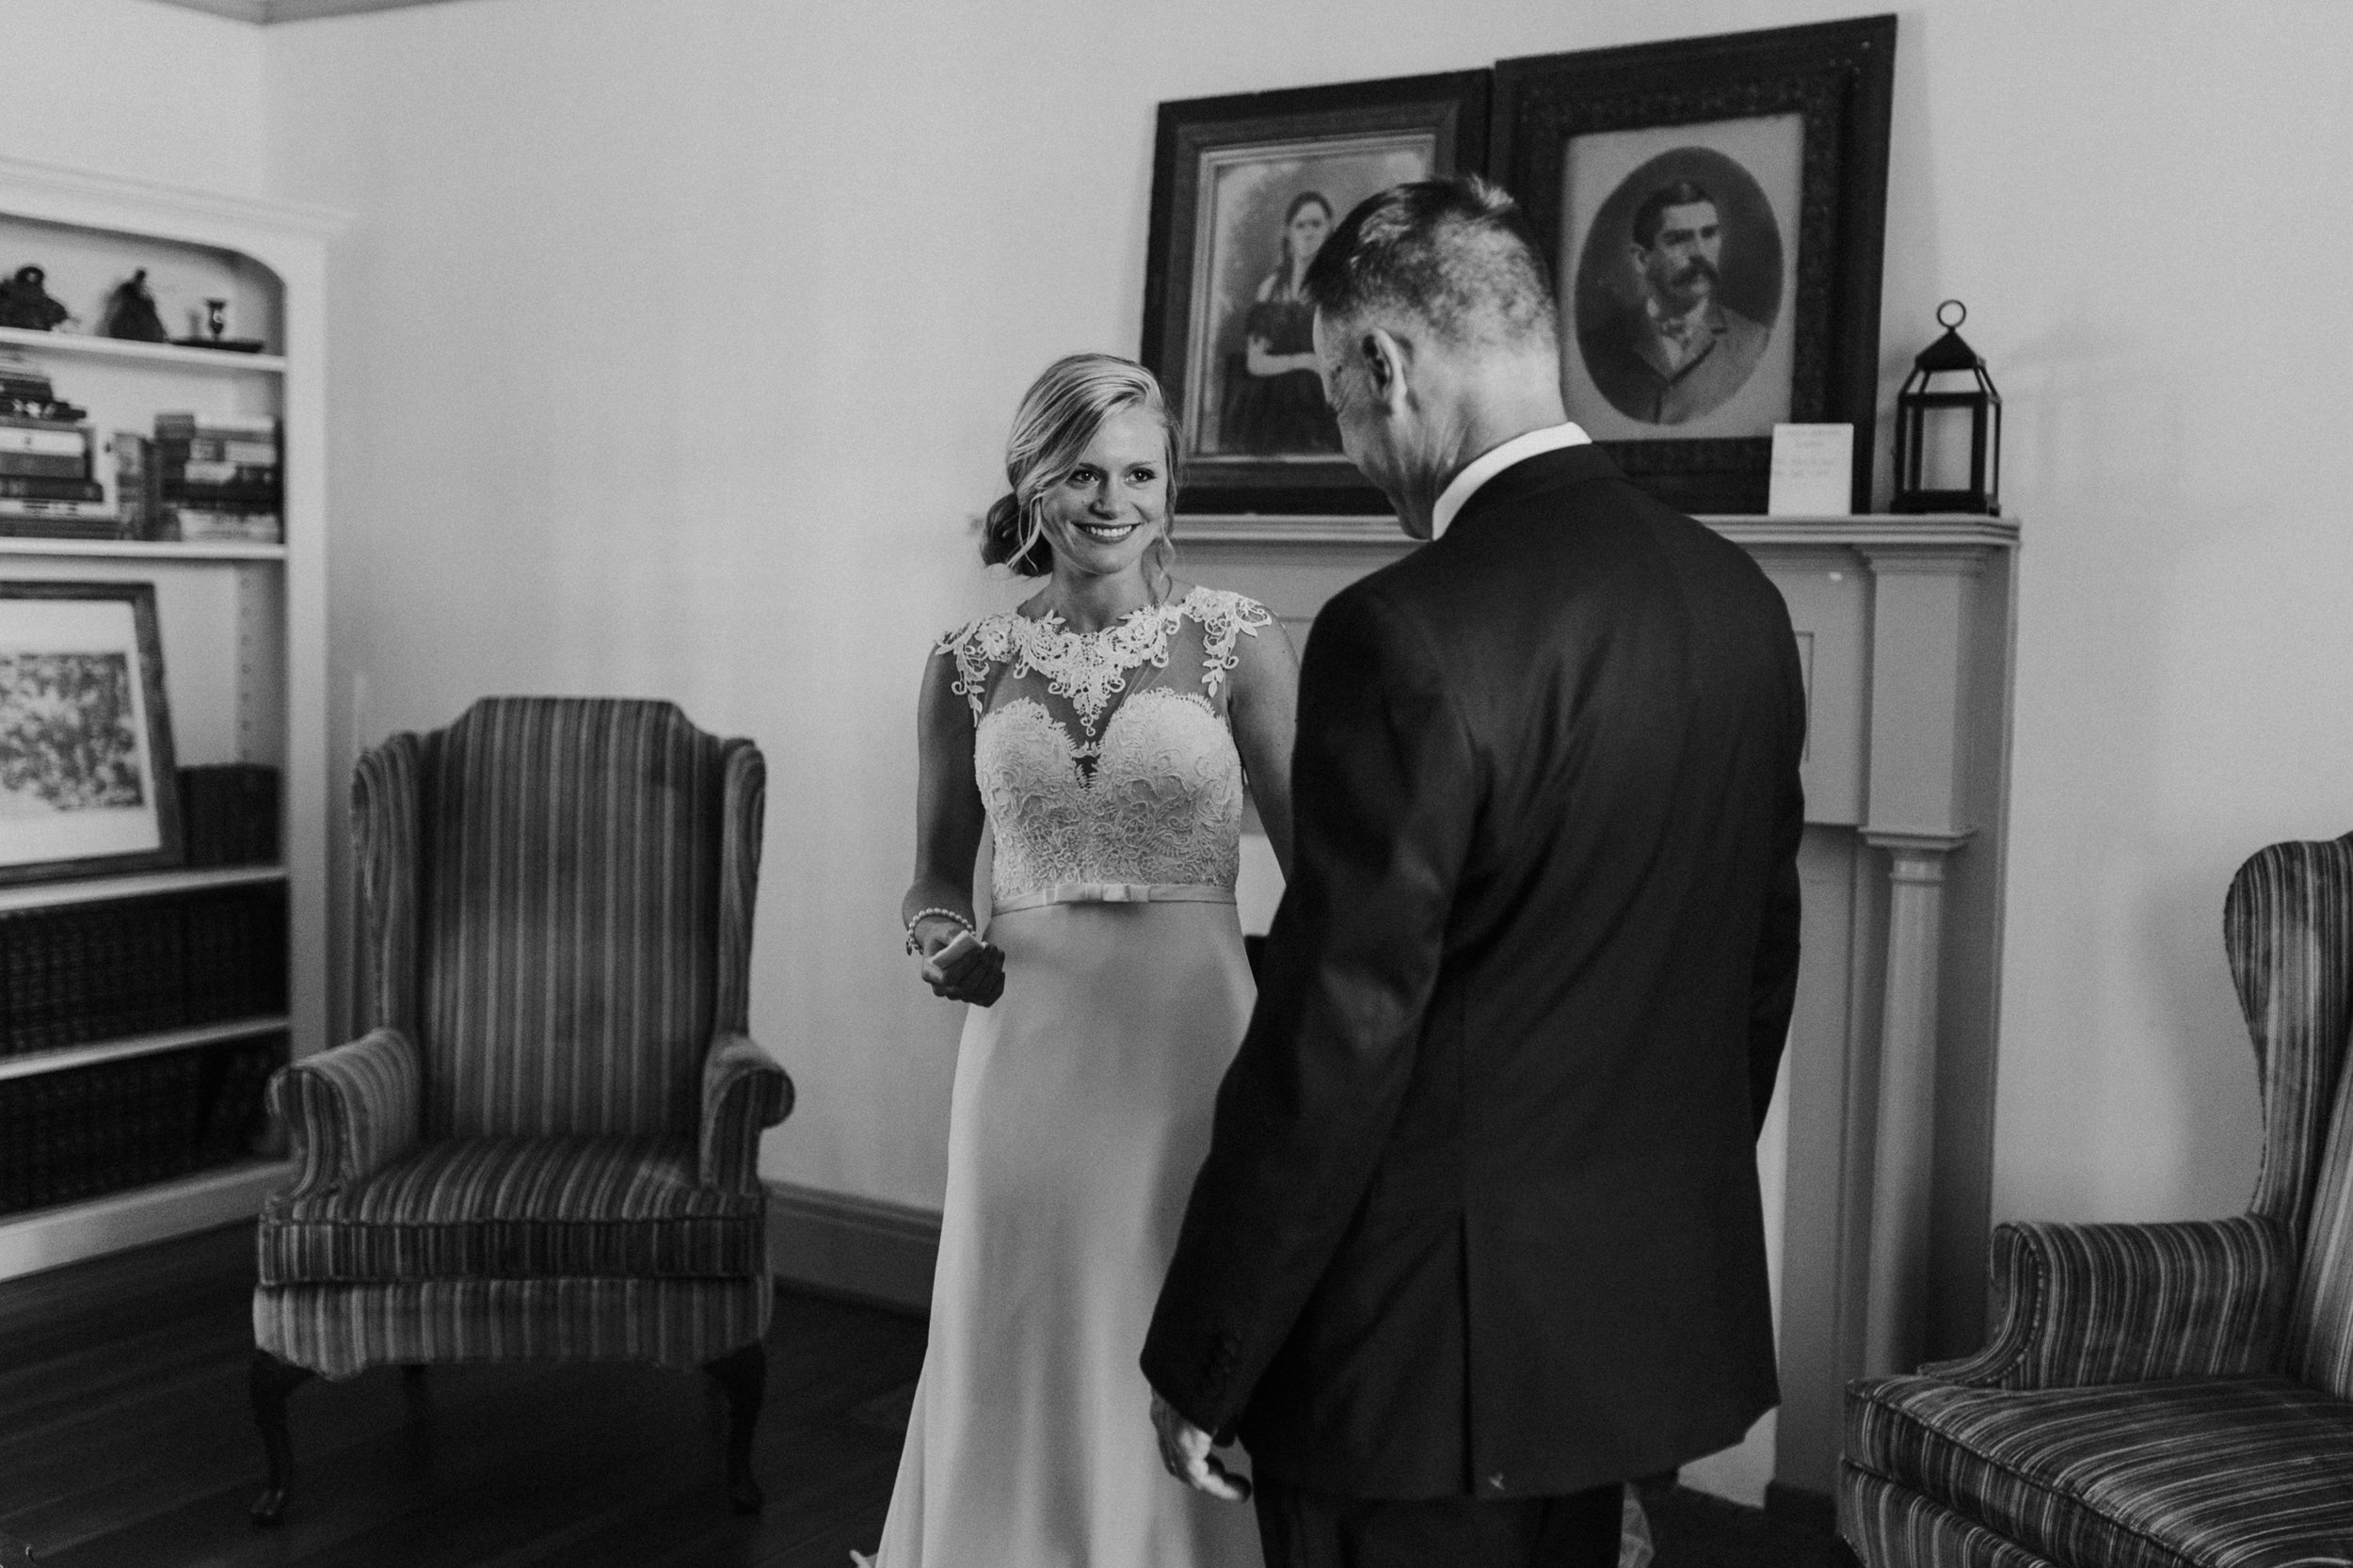 Virginia wedding photographer, Charlottesville wedding photographer, the hunt at Selma wedding, amelia virginia wedding photographer_0191.jpg